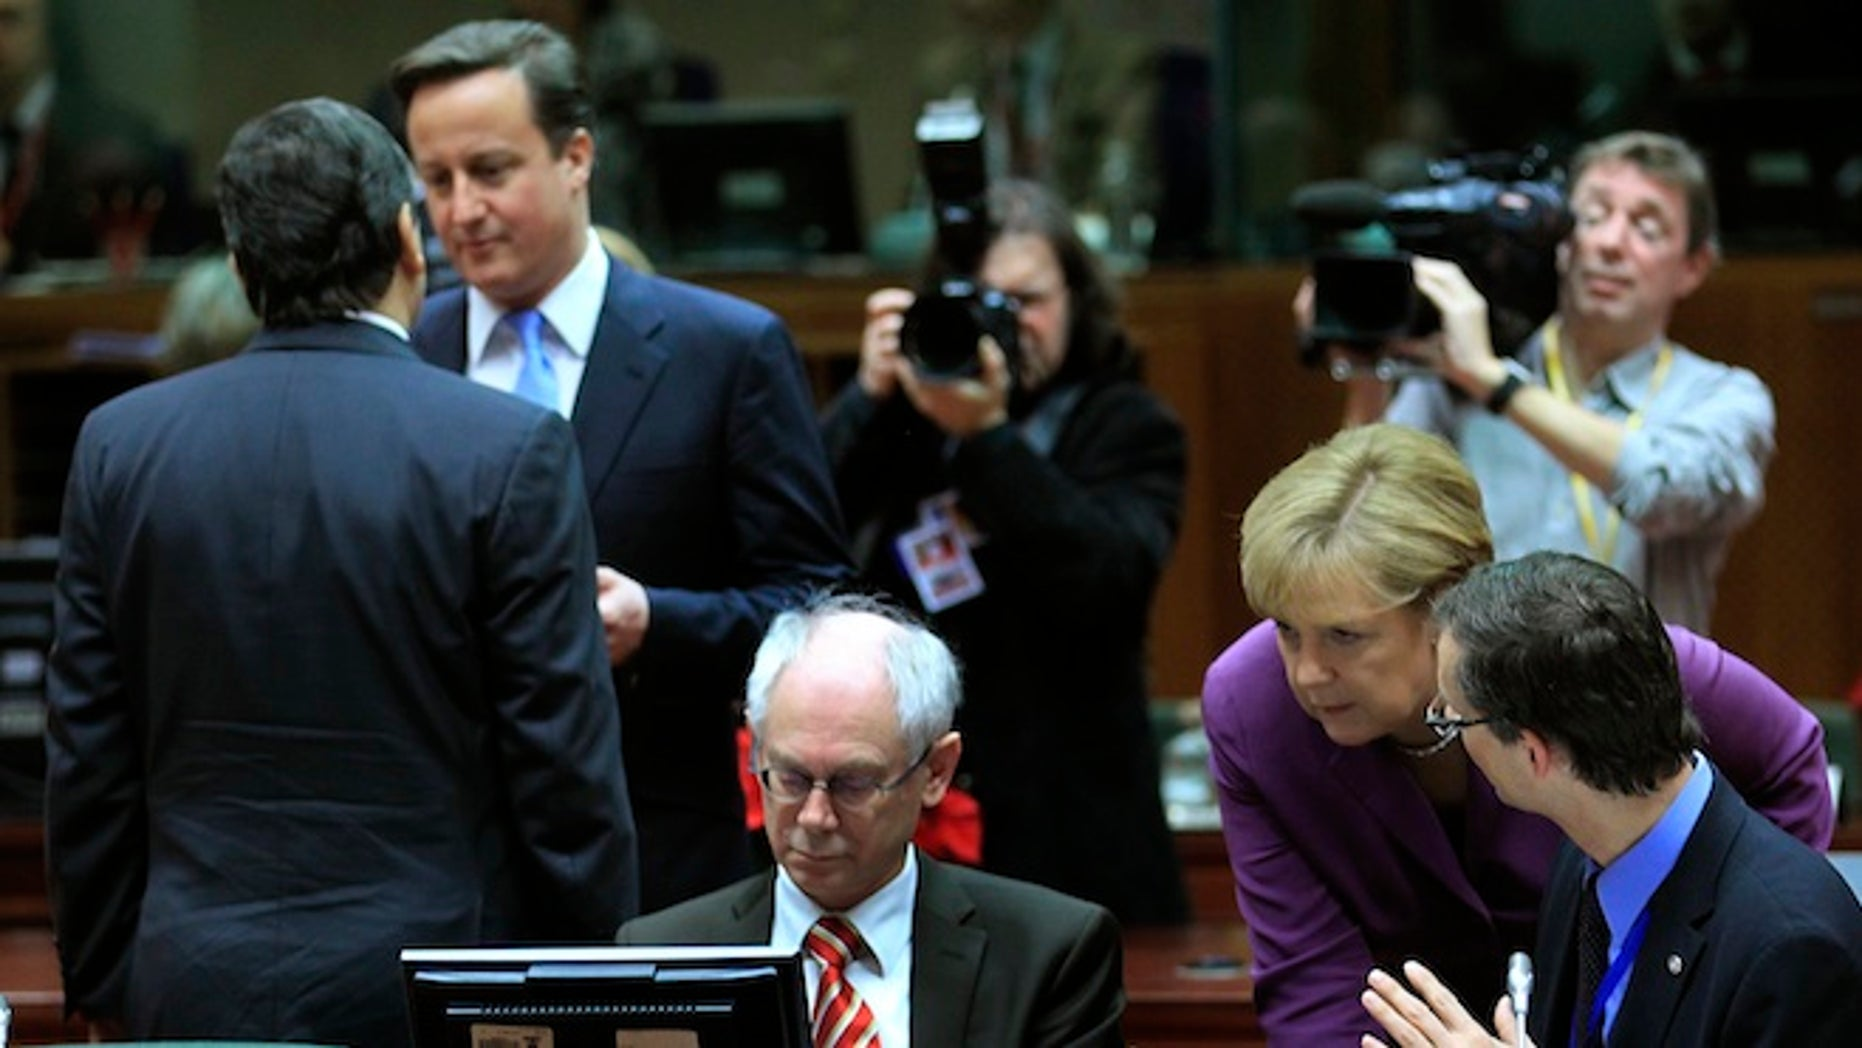 FILE: European Commission President Jose Manuel Barroso talks with Britain's Prime Minister David Cameron while Germany's Chancellor Angela Merkel (2ndR) speaks with European Council President Herman Van Rompuy (C) at a European Union summit in Brussels.